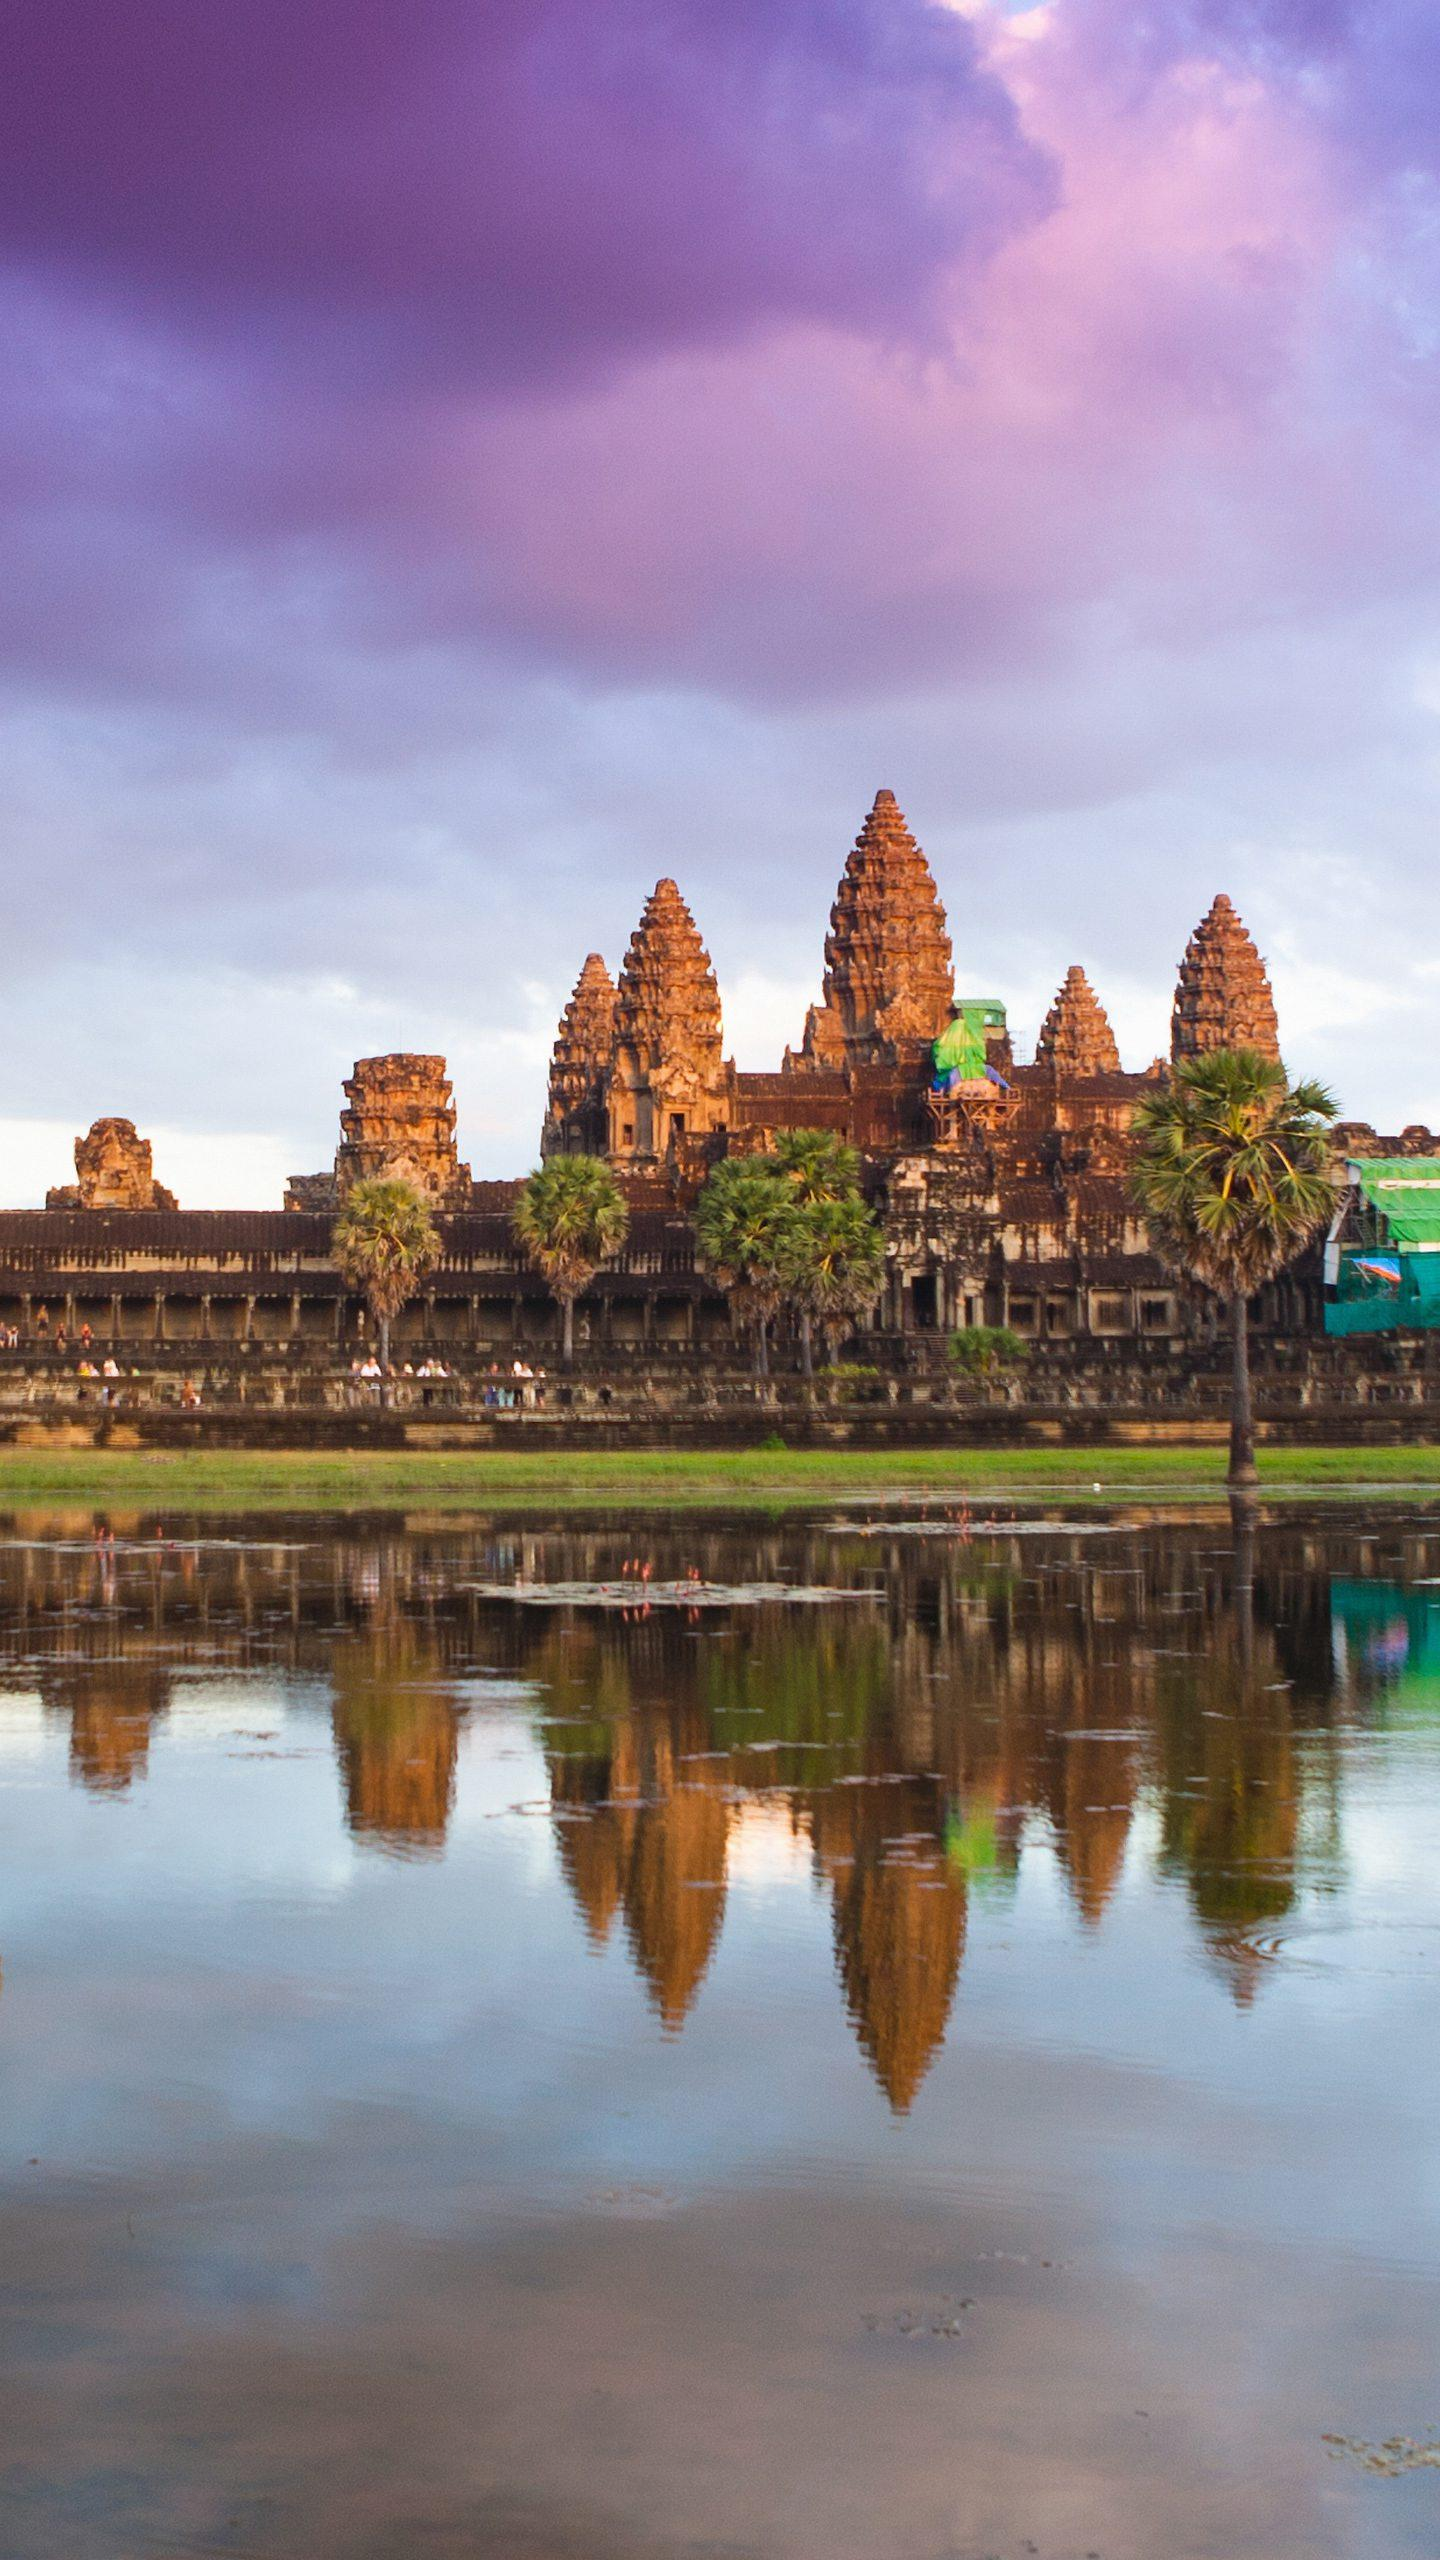 The gorgeous epic on the stone. Angkor Wat, located in Cambodia, is the world's first Khmer-style building.